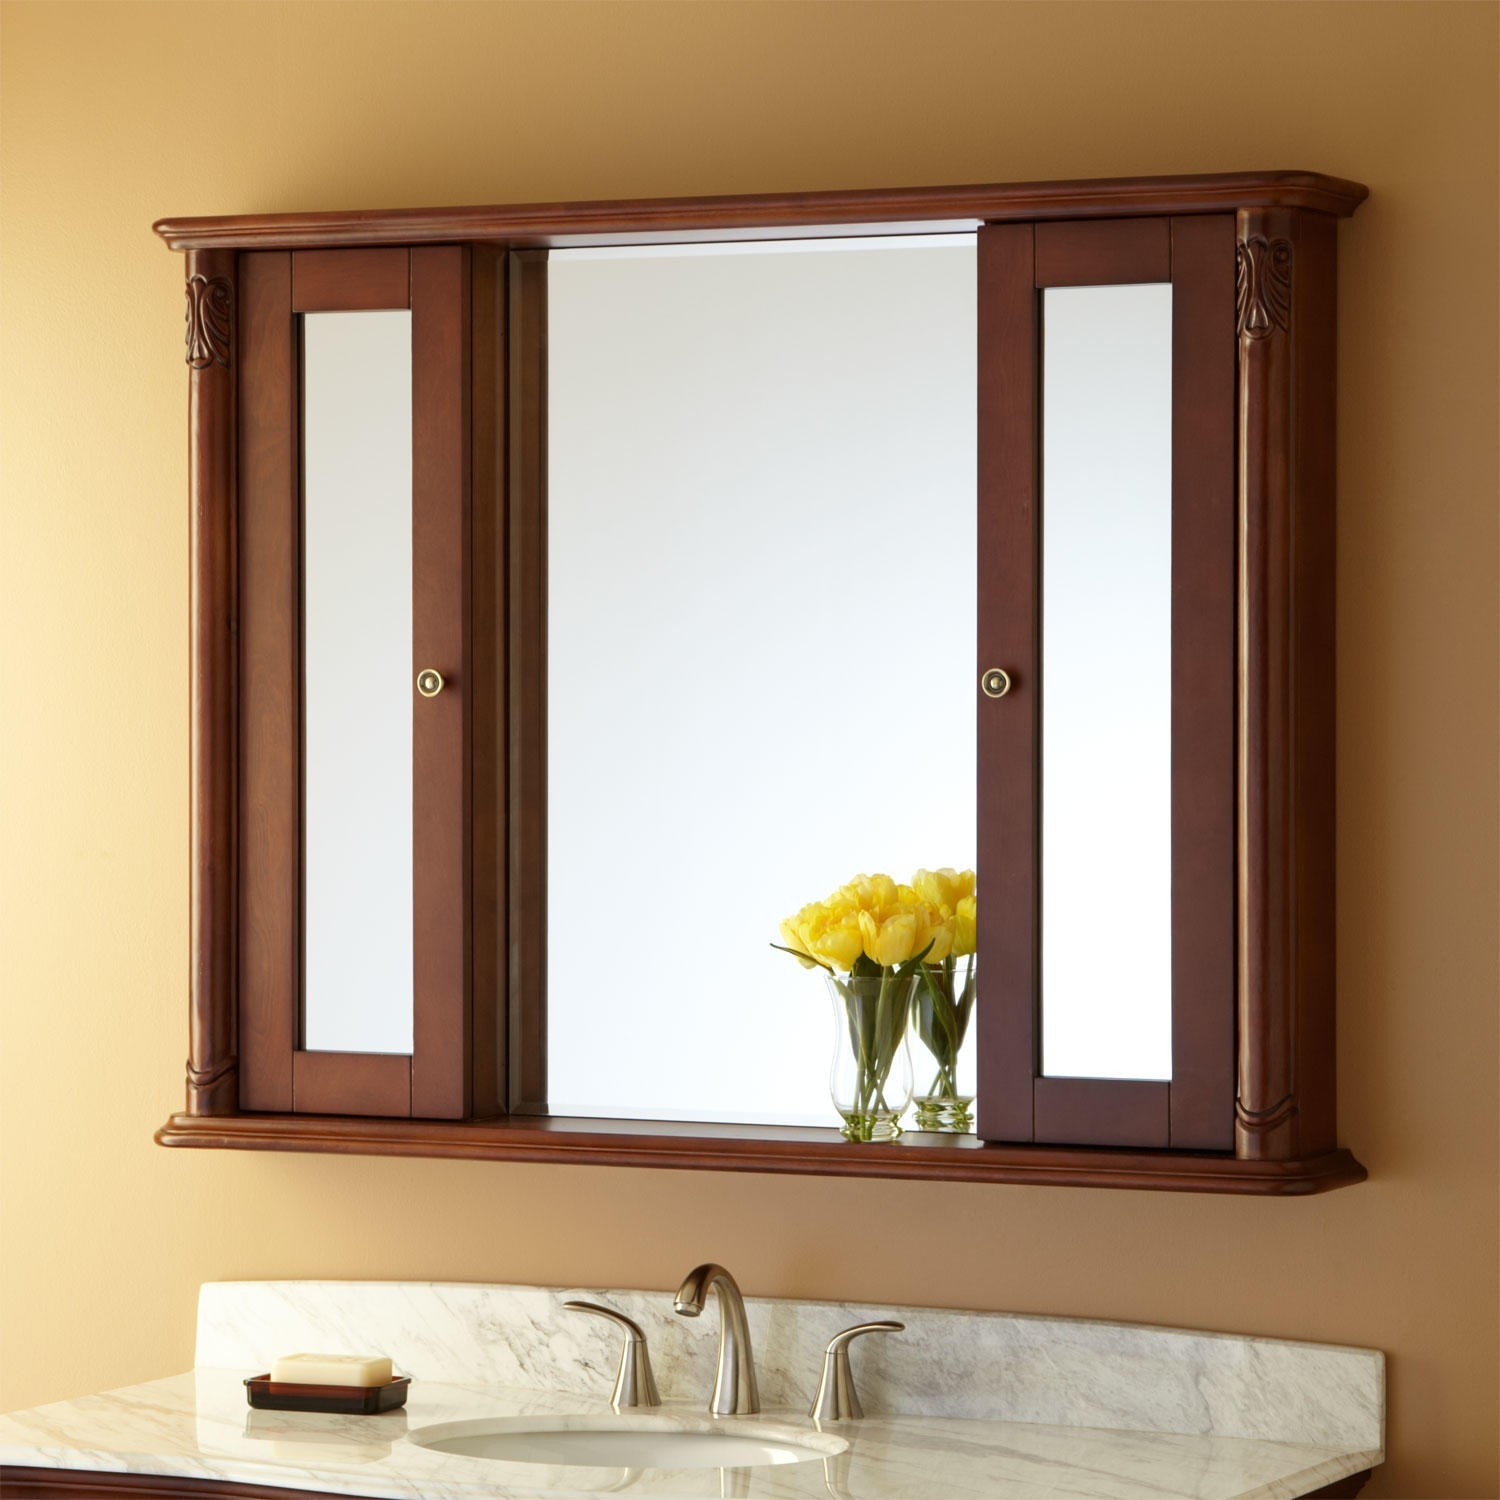 Bathroom Large Wood Wall Mounted Bathroom Medicine Cabinet With With Large Brown Mirror (View 13 of 15)